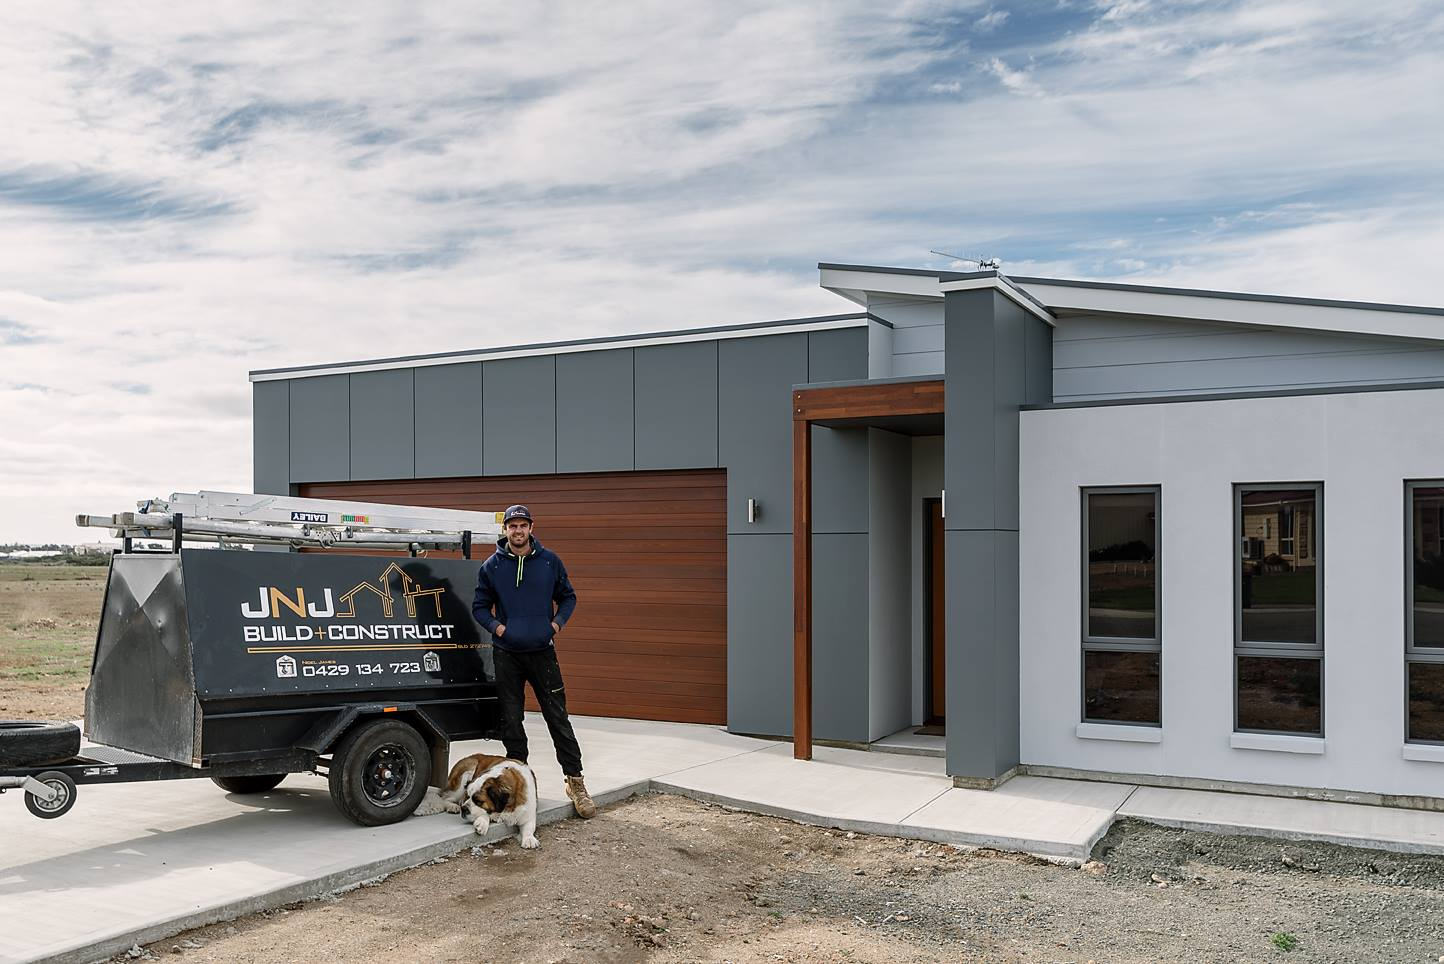 After completing his apprenticeship here in Tumby Bay, Nigel moved to Adelaide to further develop his skills. Upon returning to the Eyre Peninsula, having gained over 10 years of industry experience, he decided to start JNJ Build+Construct offering a custom home building service.